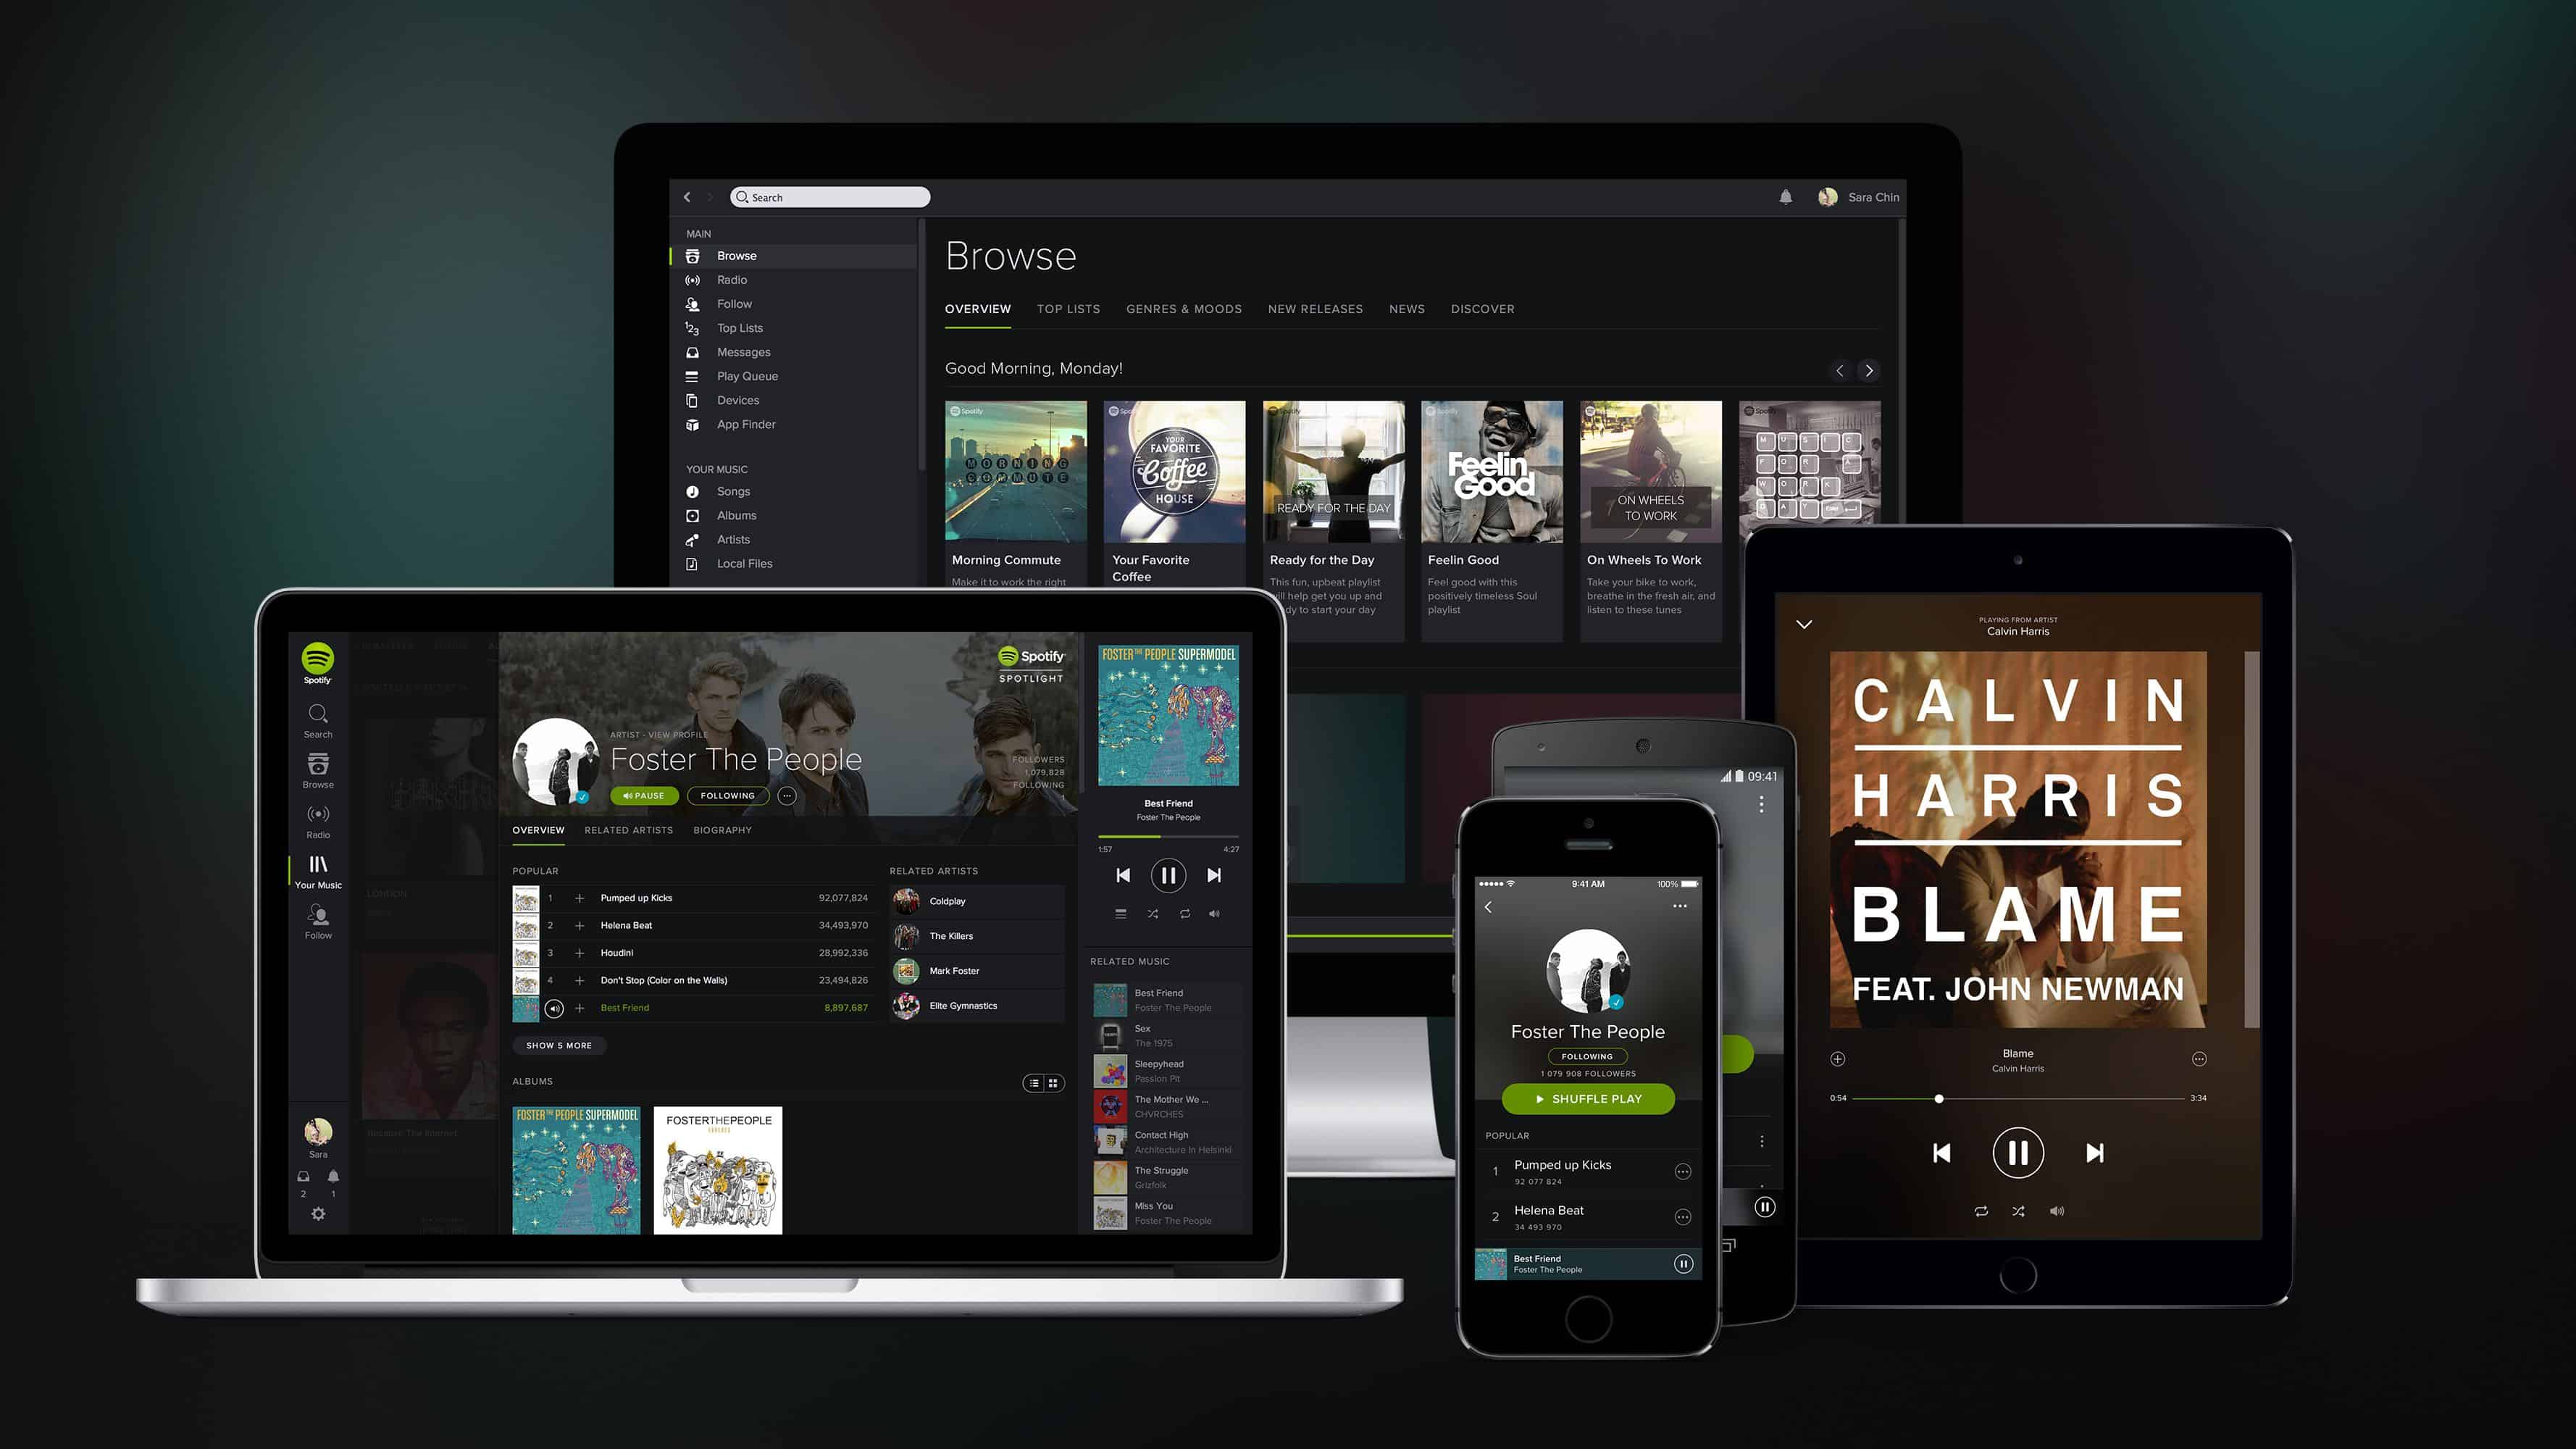 spotify app on mobile devices